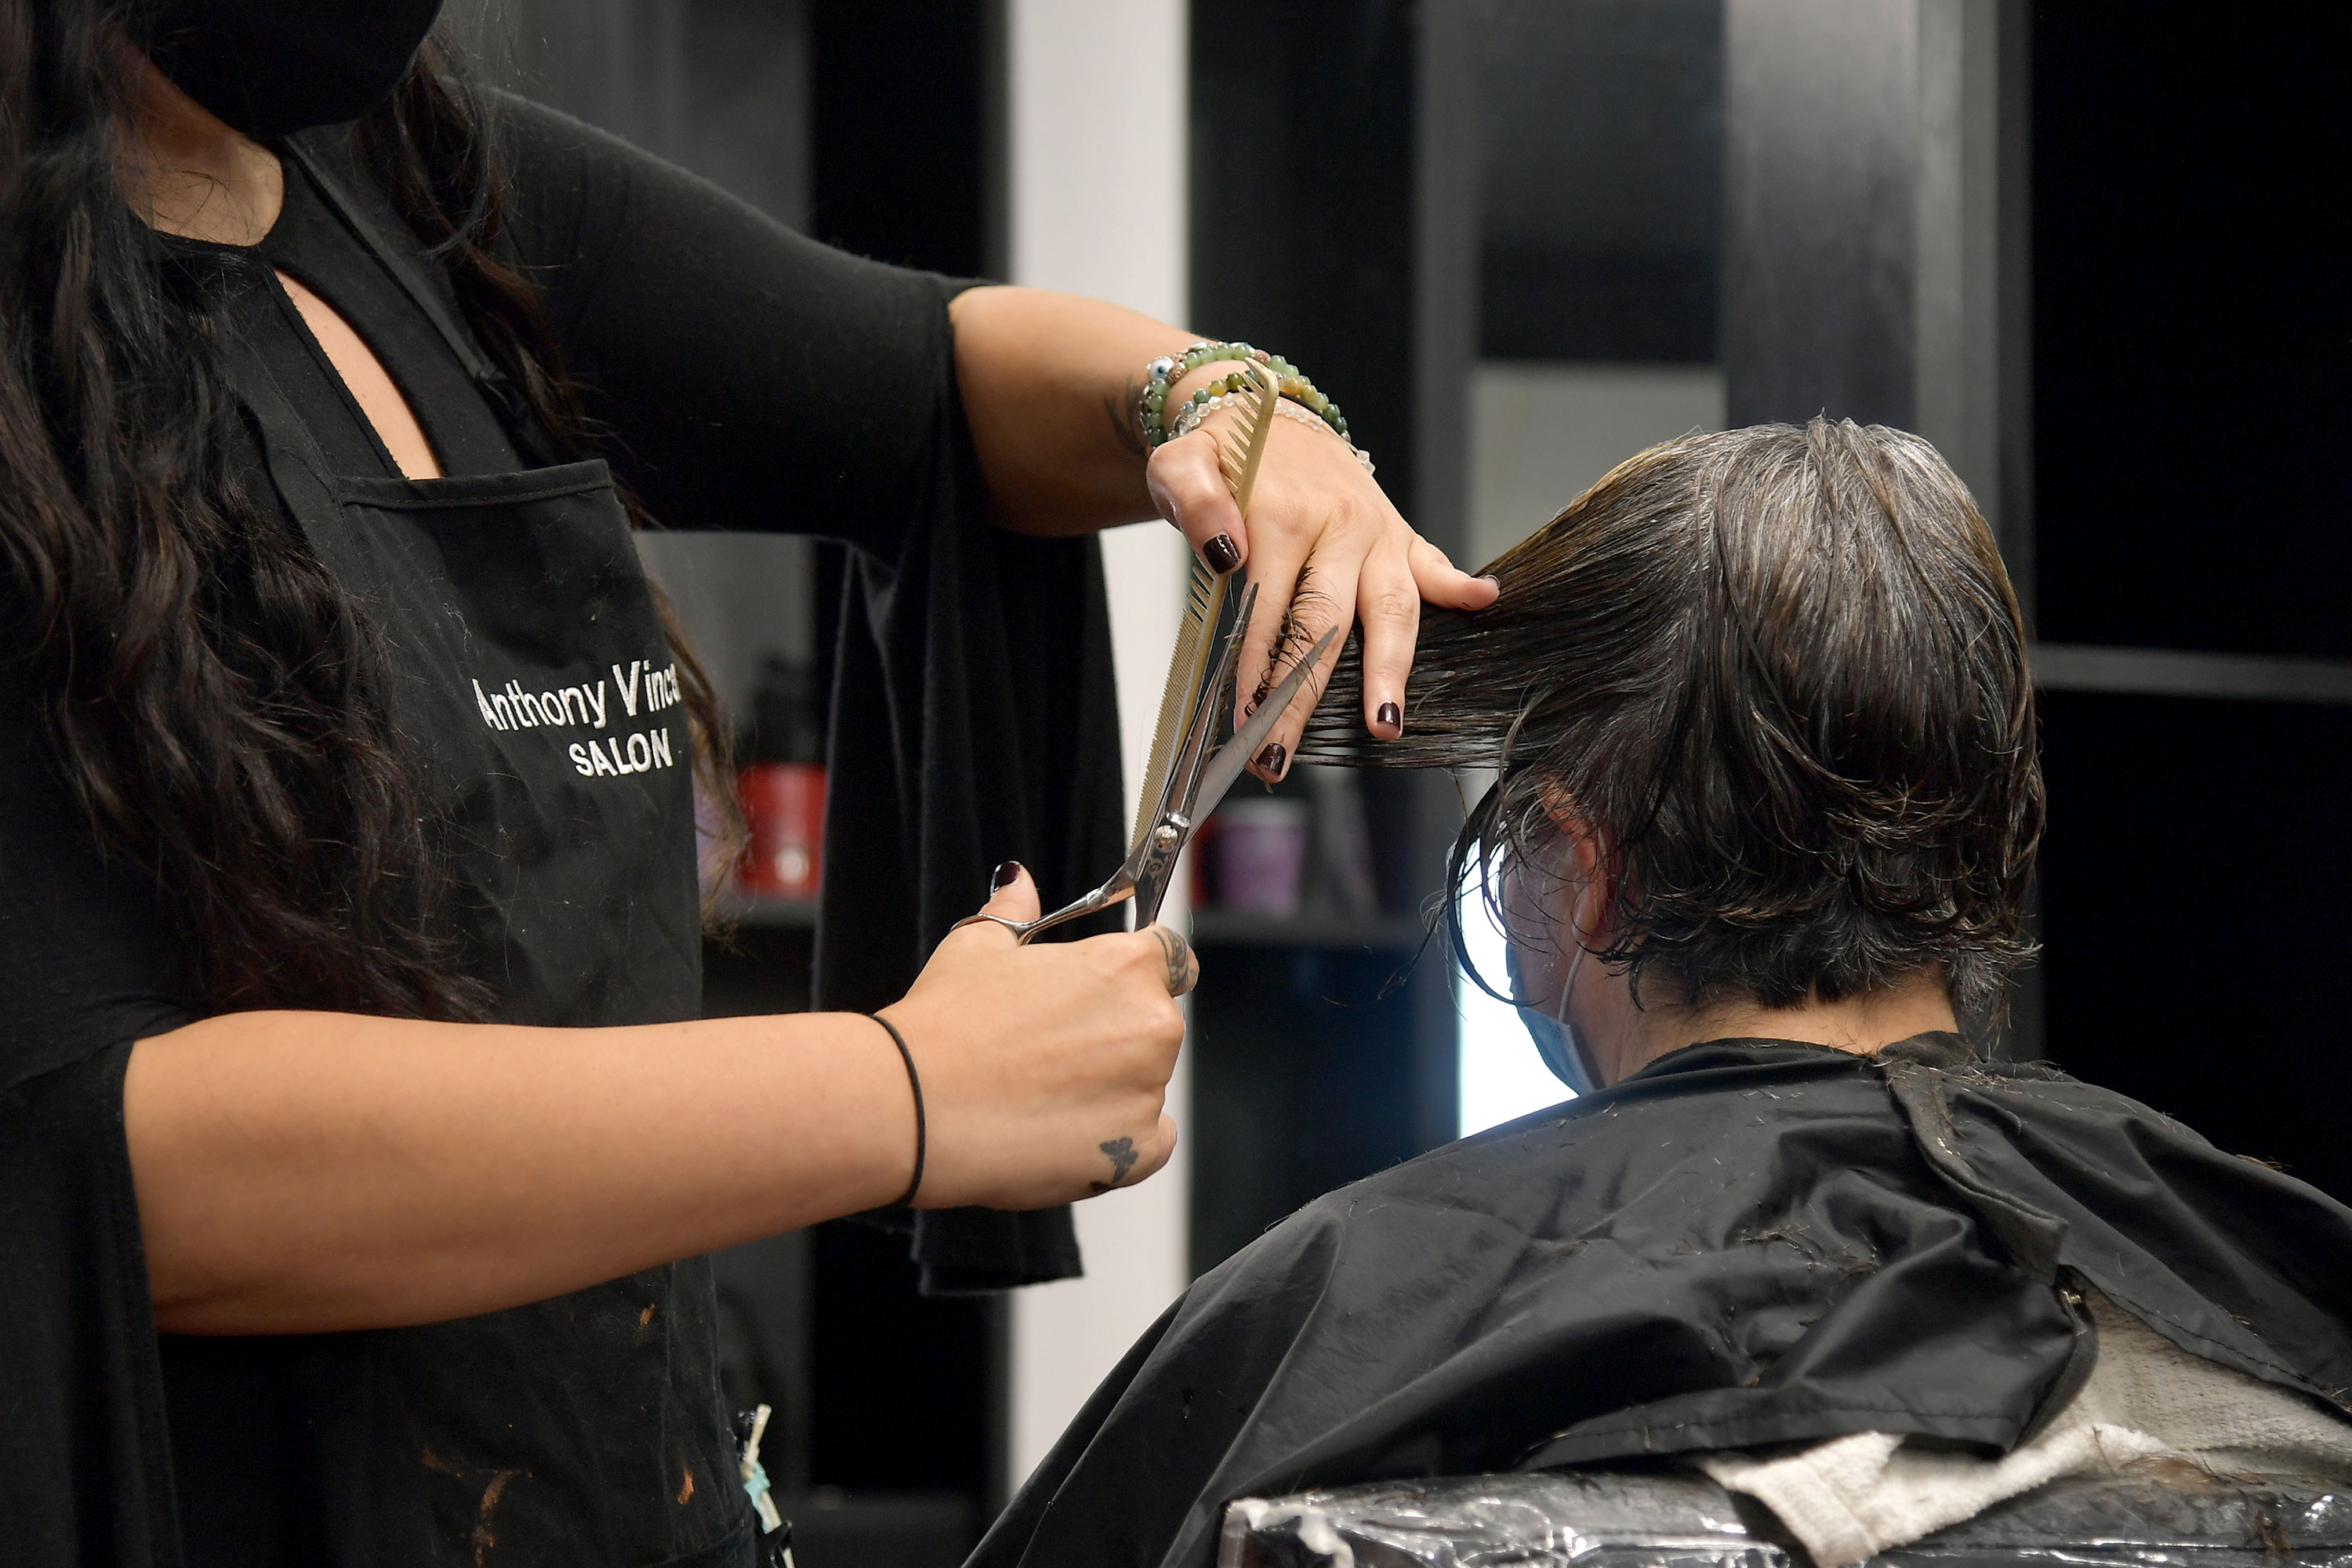 A customer gets her hair cut in East Windsor, New Jersey, on June 22.